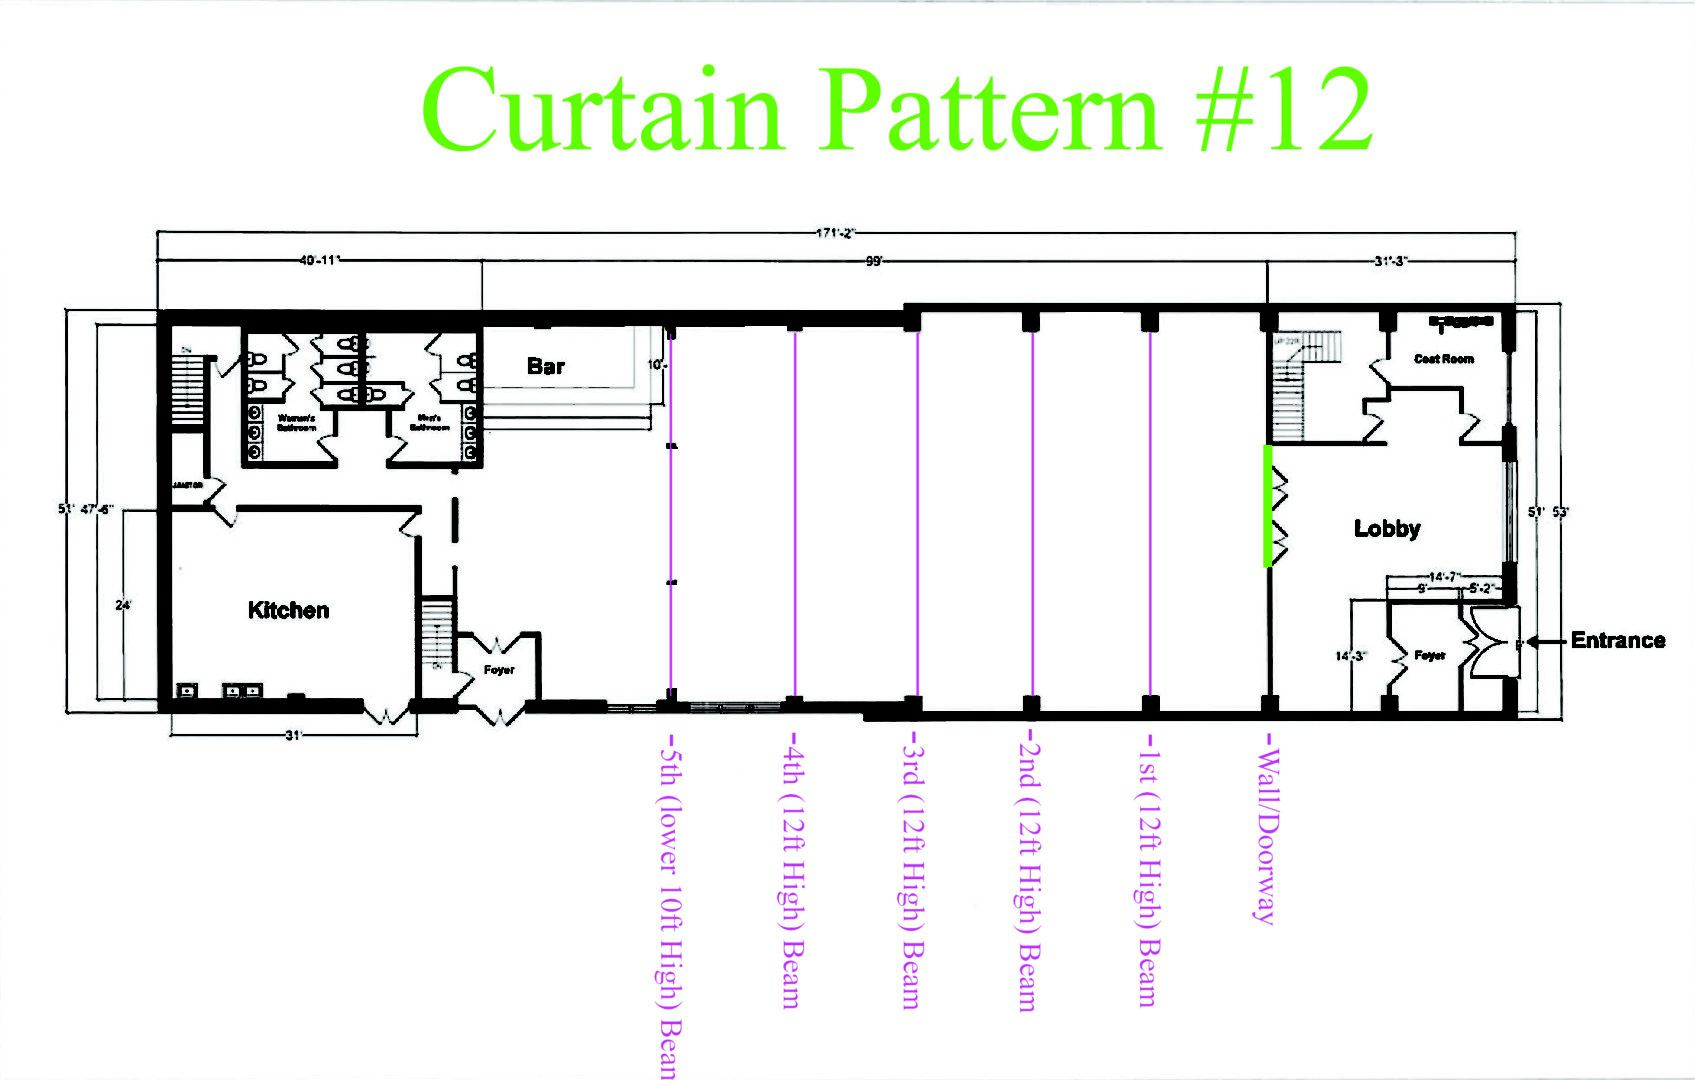 Suspended across the Width of the Balcony/Mezzanine overlooking the Main Room Sheer Curtain - Approximately $180 (Plus - NYC Sales Tax & Delivery)